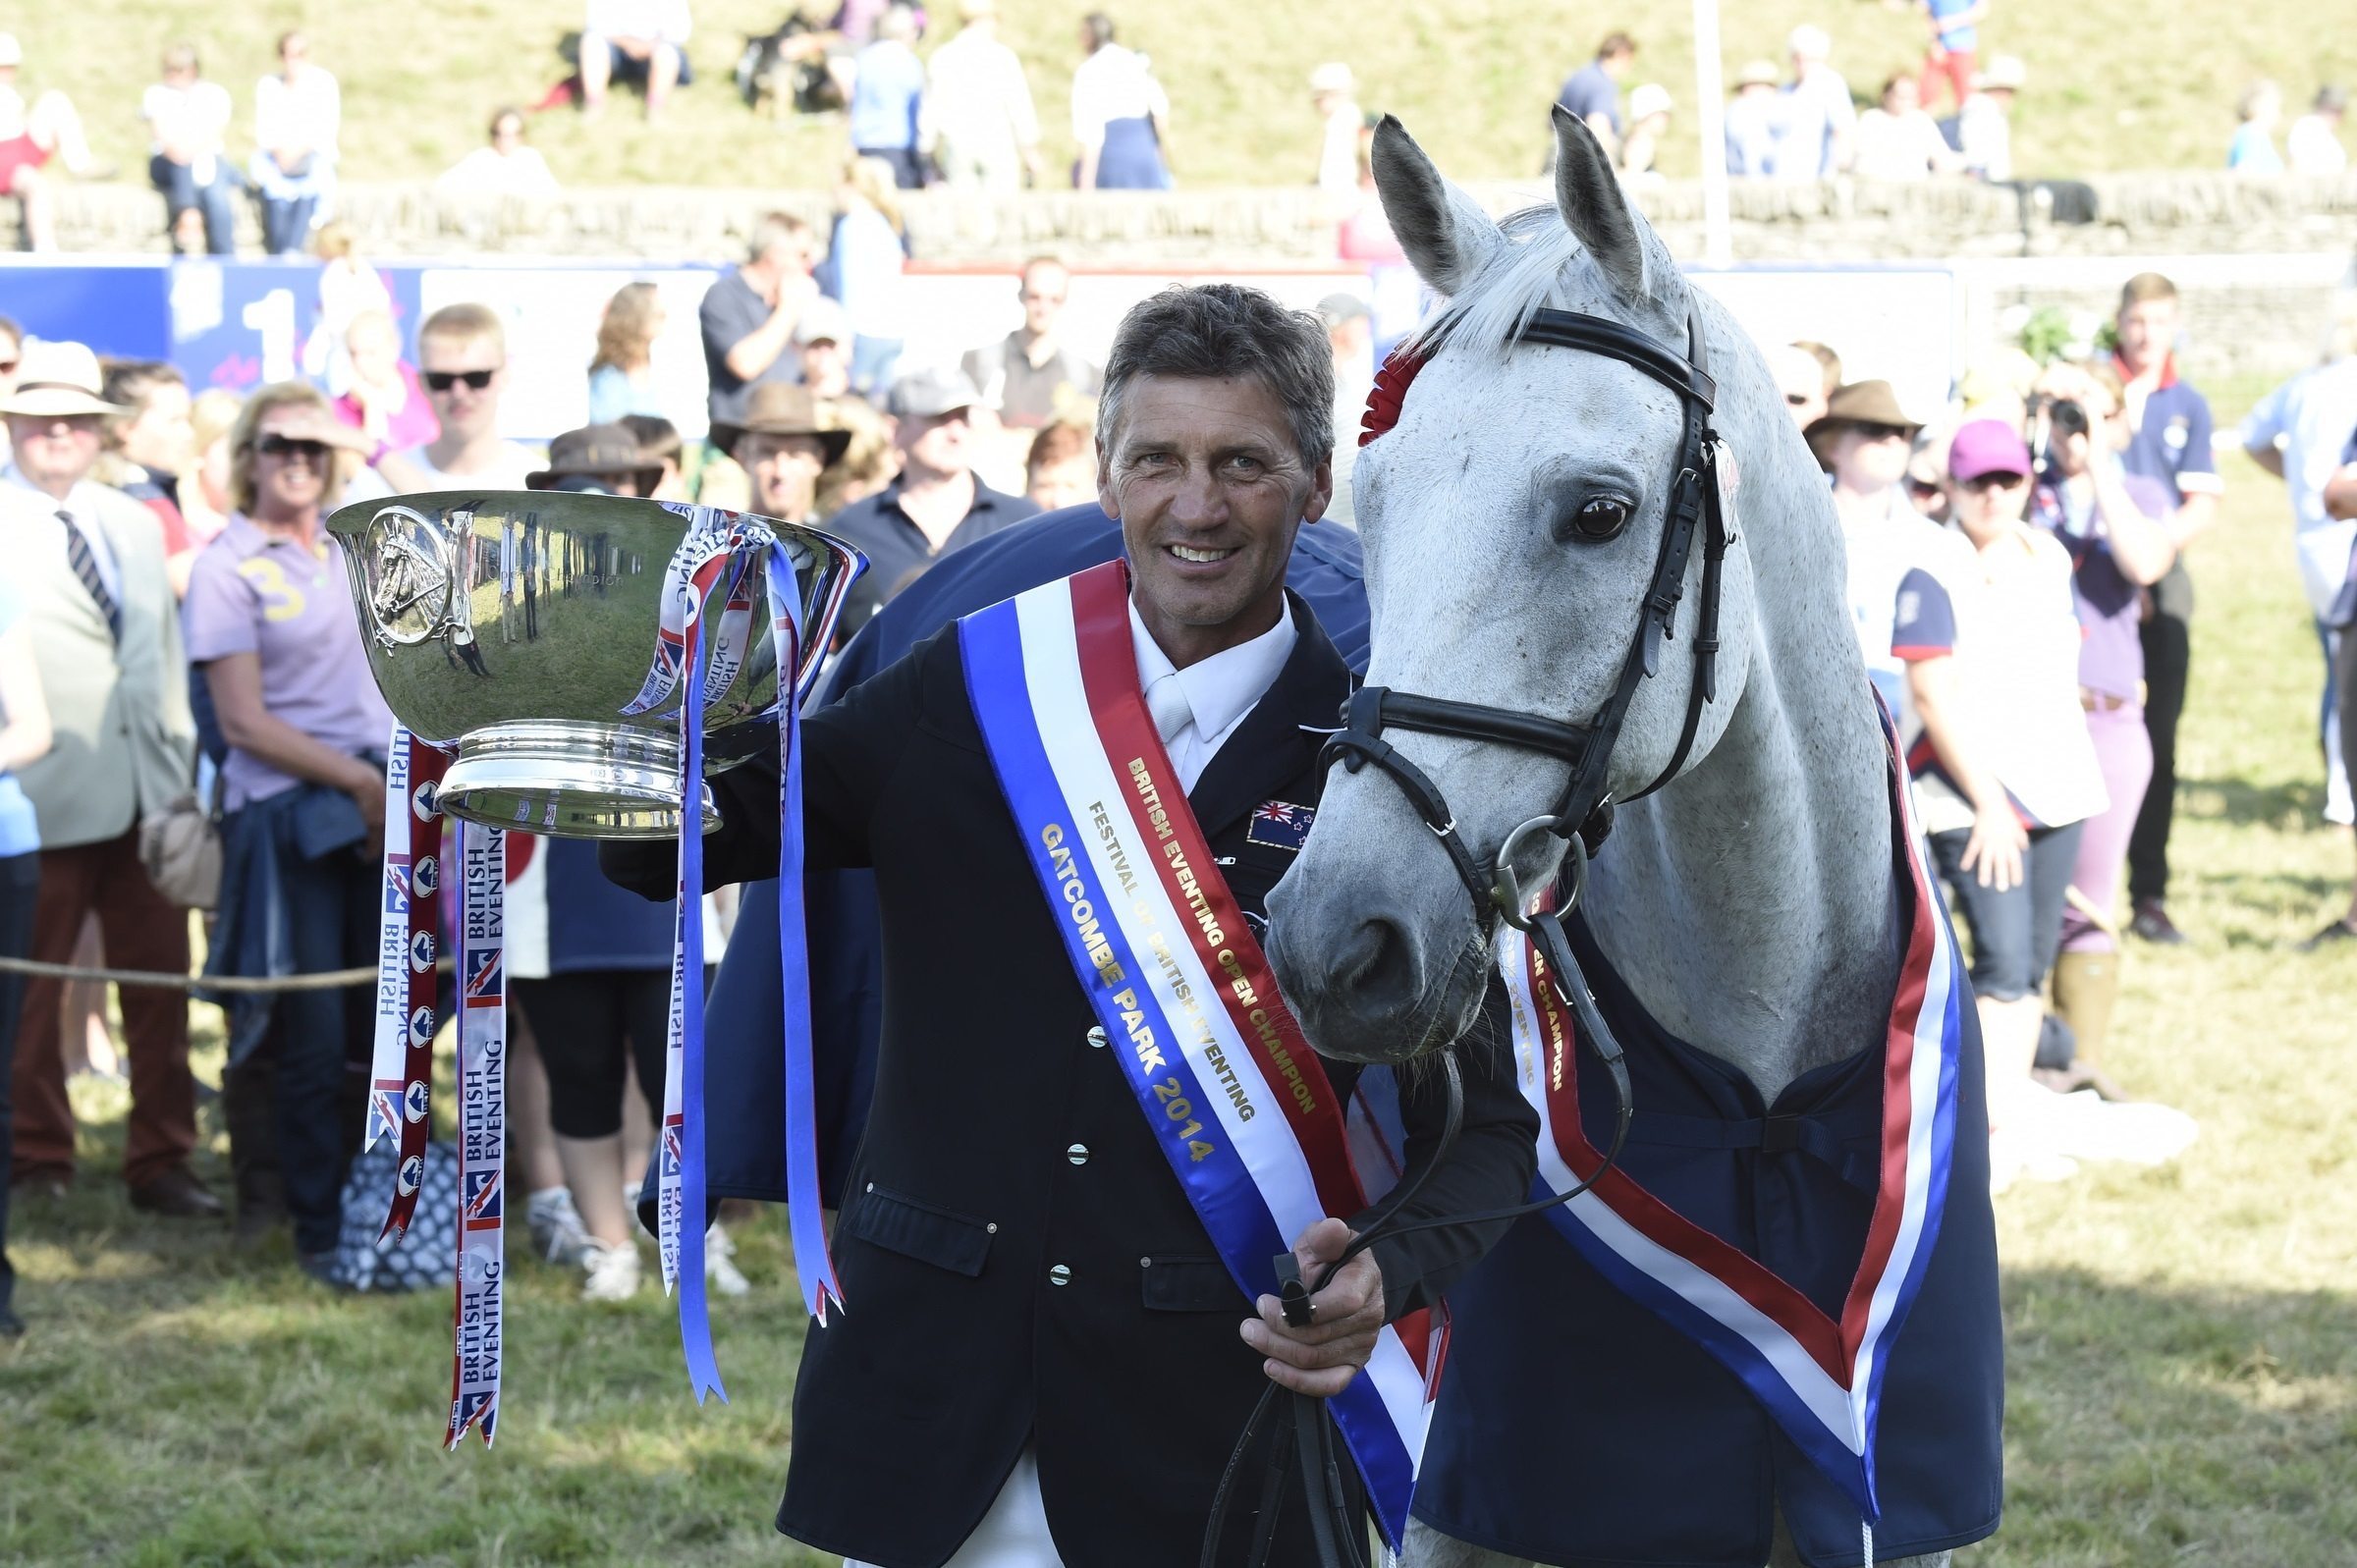 Equestrian: Nicholson cruises to victory at Gatcombe